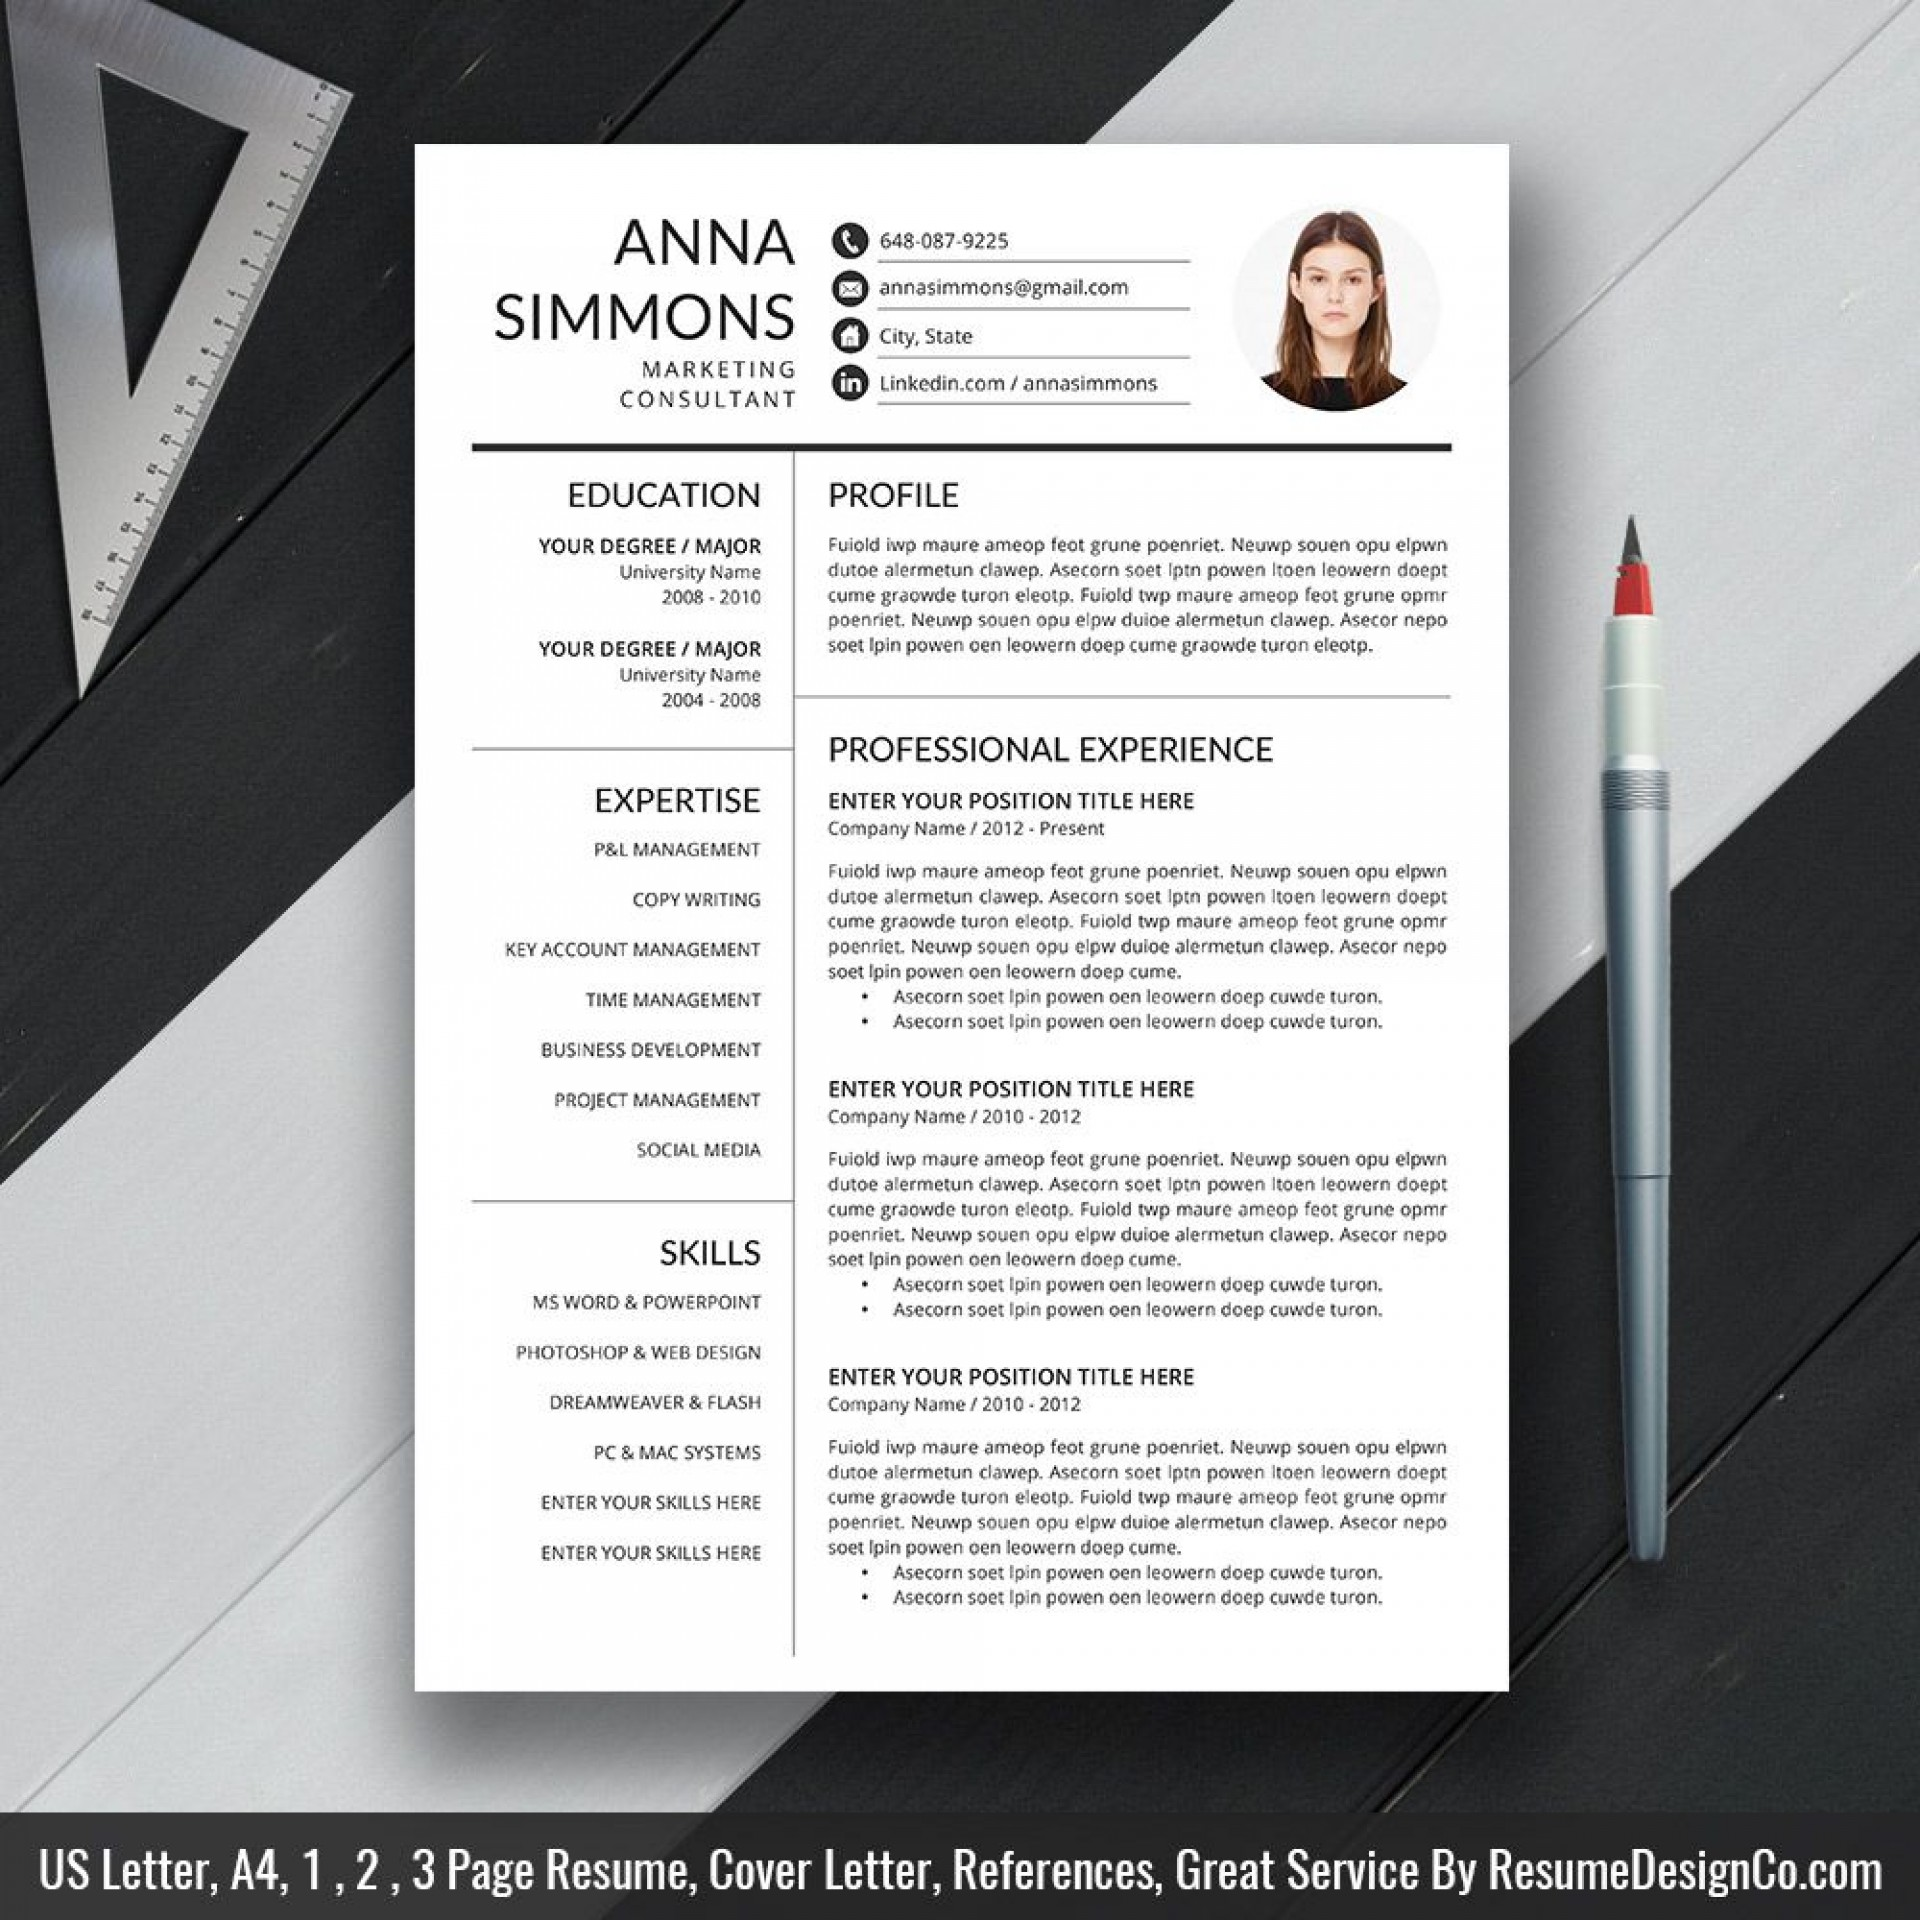 009 Magnificent Microsoft Word Resume Template 2020 High Definition  Free1920